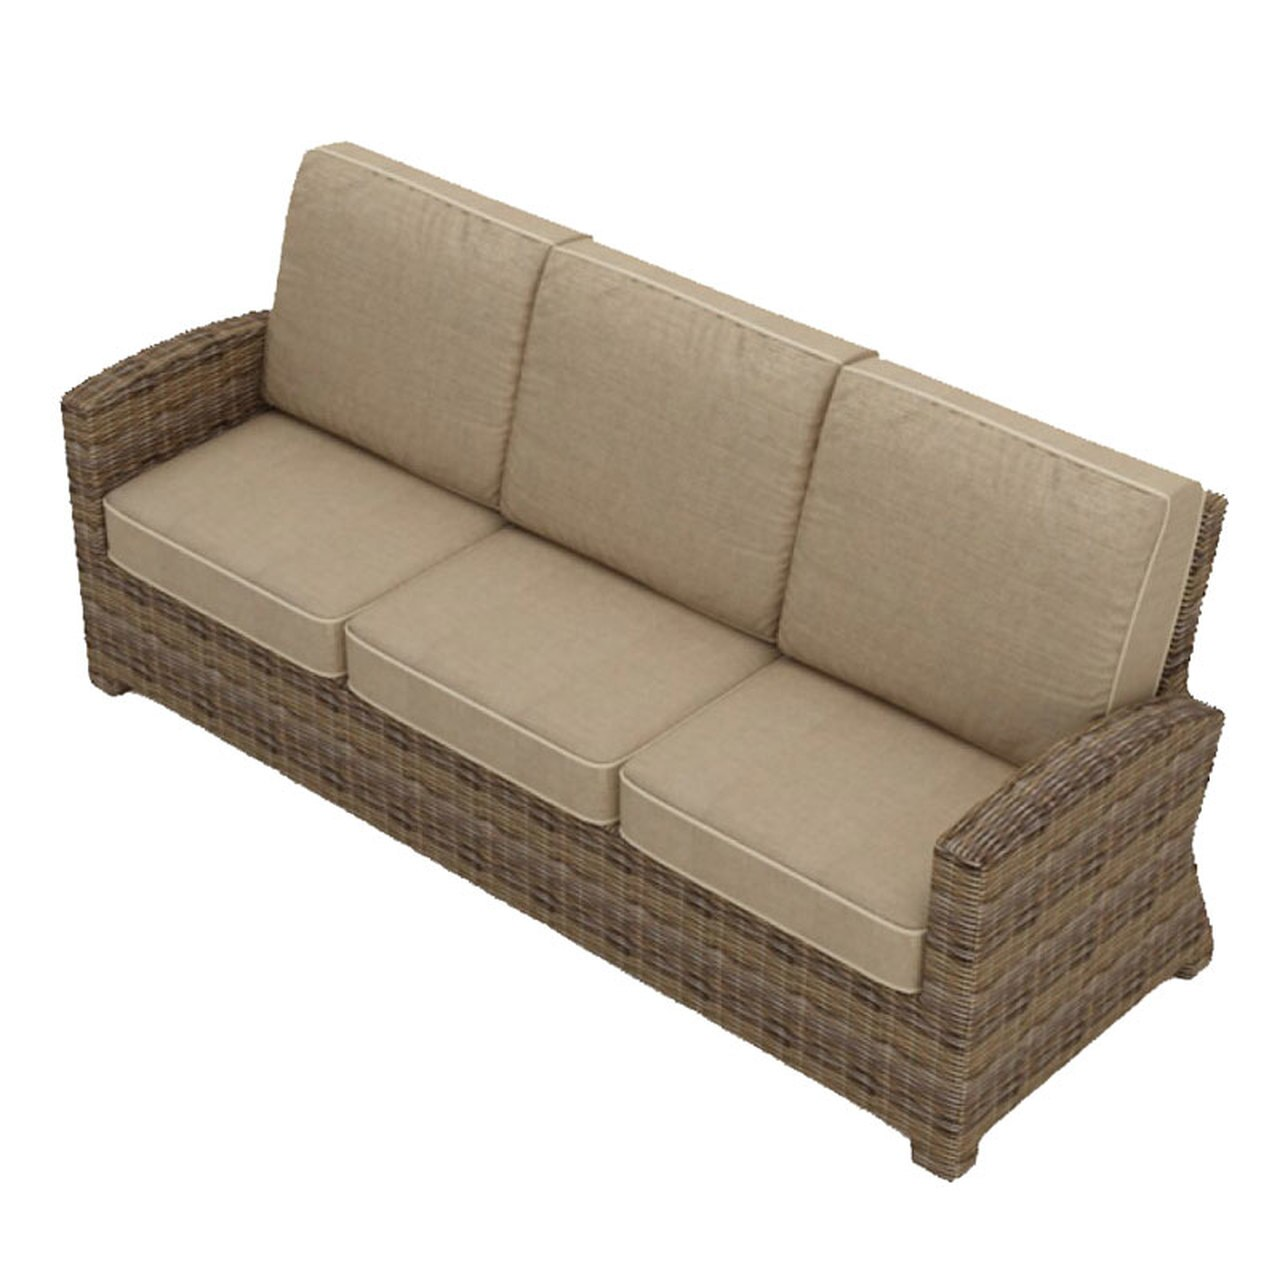 Bainbridge 3 Seater Wicker Sofa